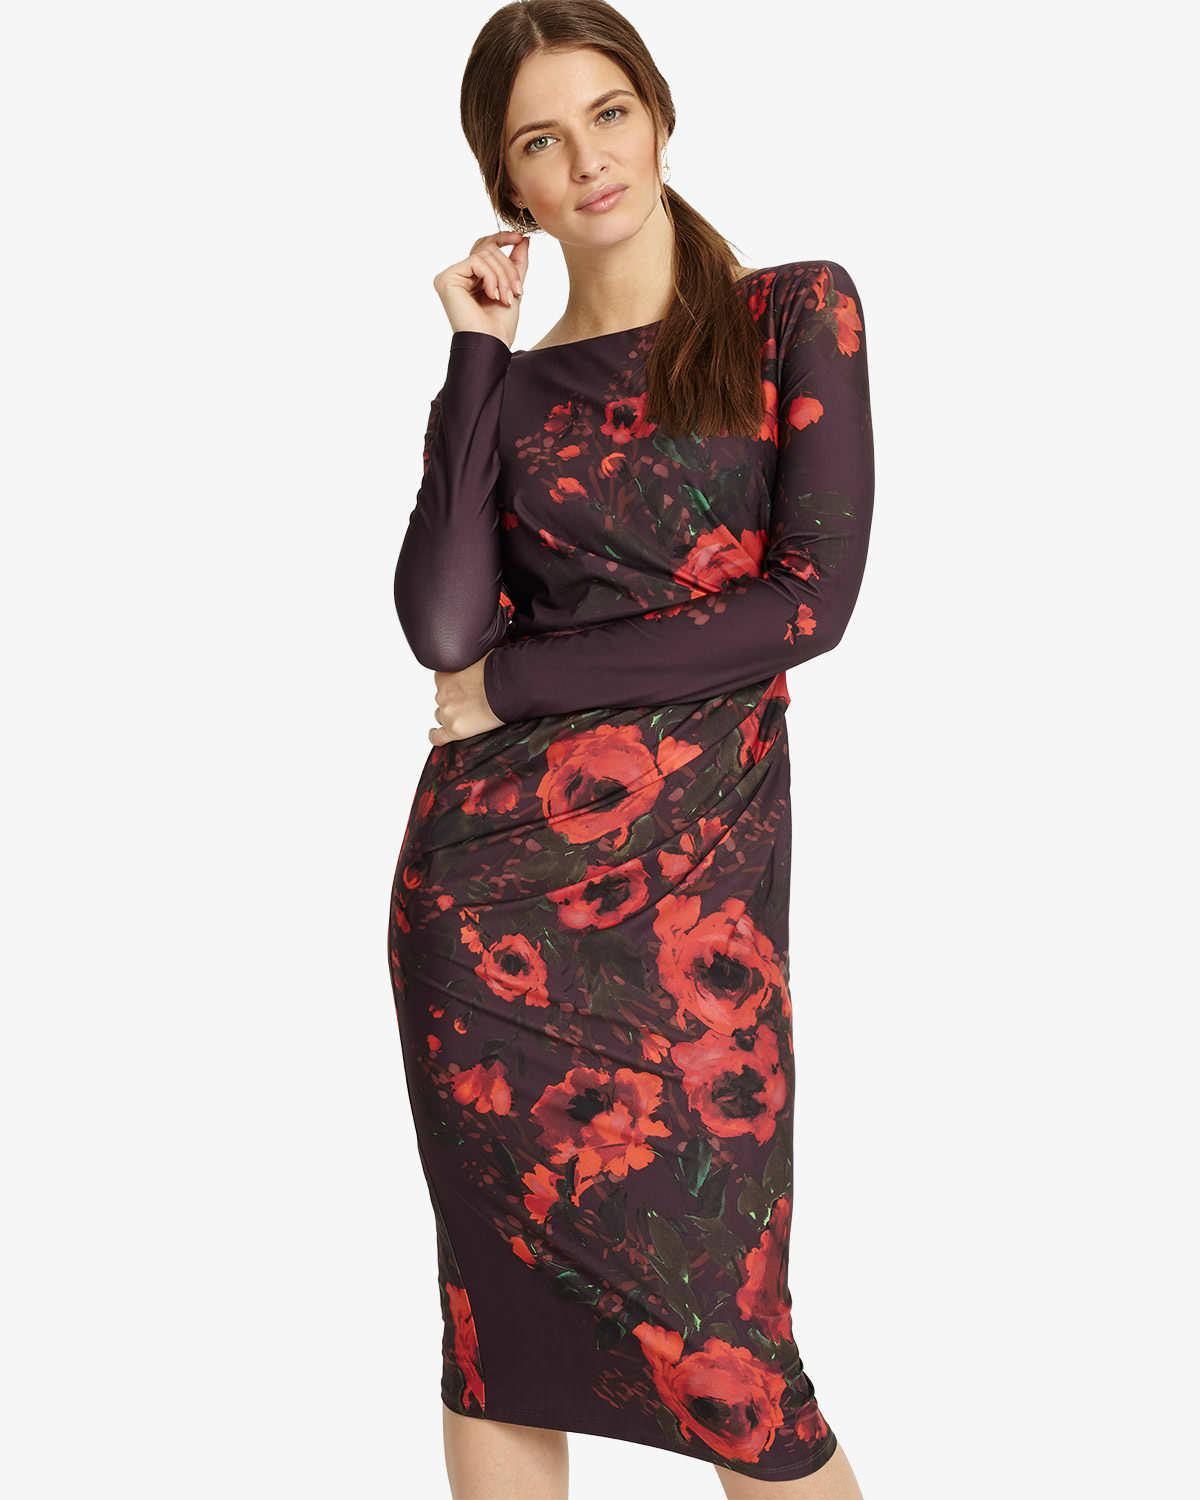 a7e6061e9d9c6 Lyst - Phase Eight Wilhelmina Floral Print Dress in Black